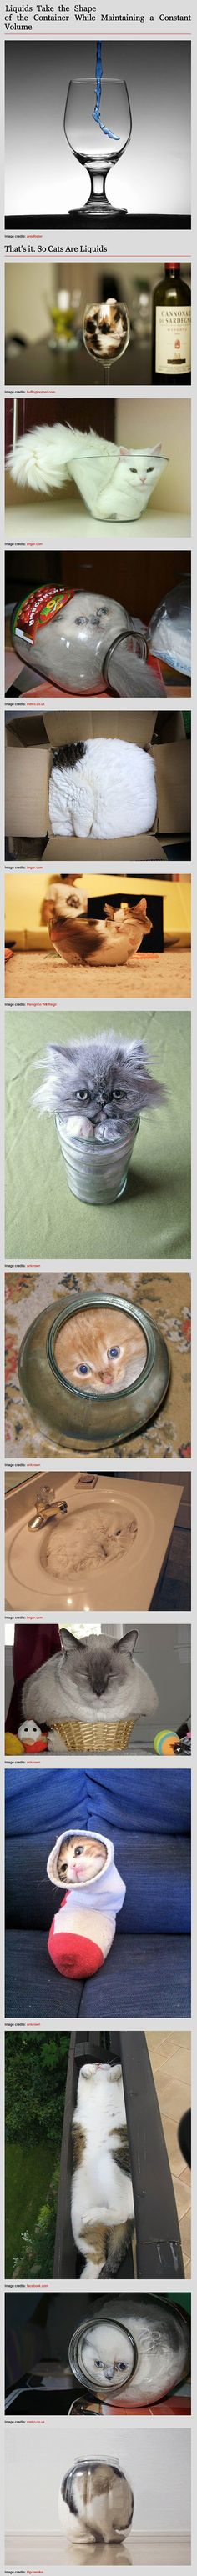 Here is why cats might actually be liquid, or shapeshifters. (I just kept laughing and laughing and laughing)